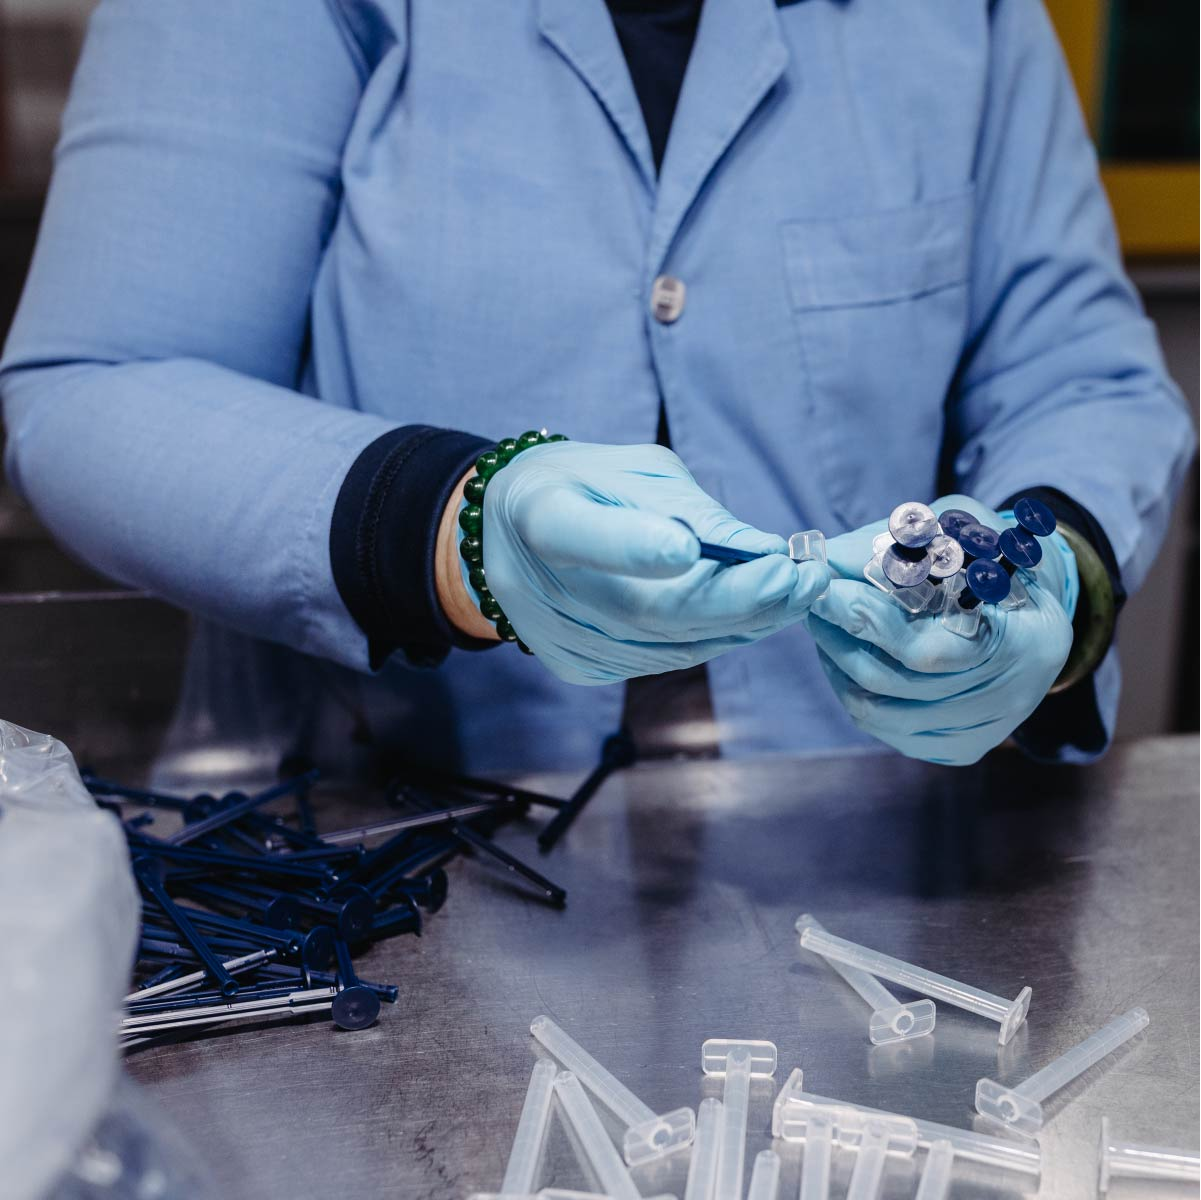 Close up of a woman who is assembling a medical device